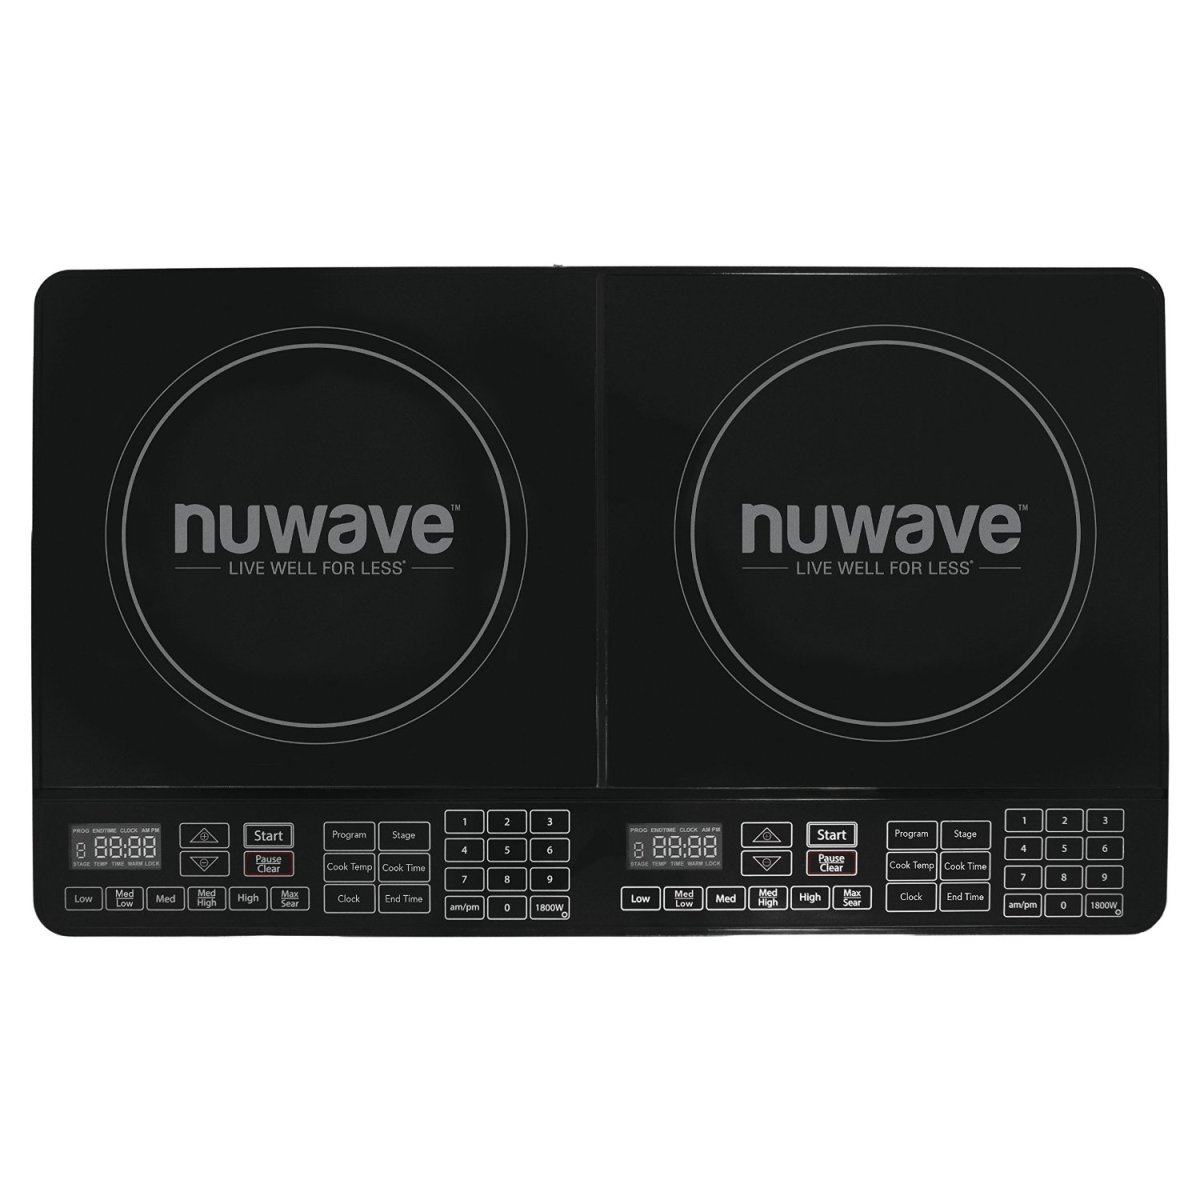 NuWave 30602 Double Precision Induction Cooktop Burner – Review